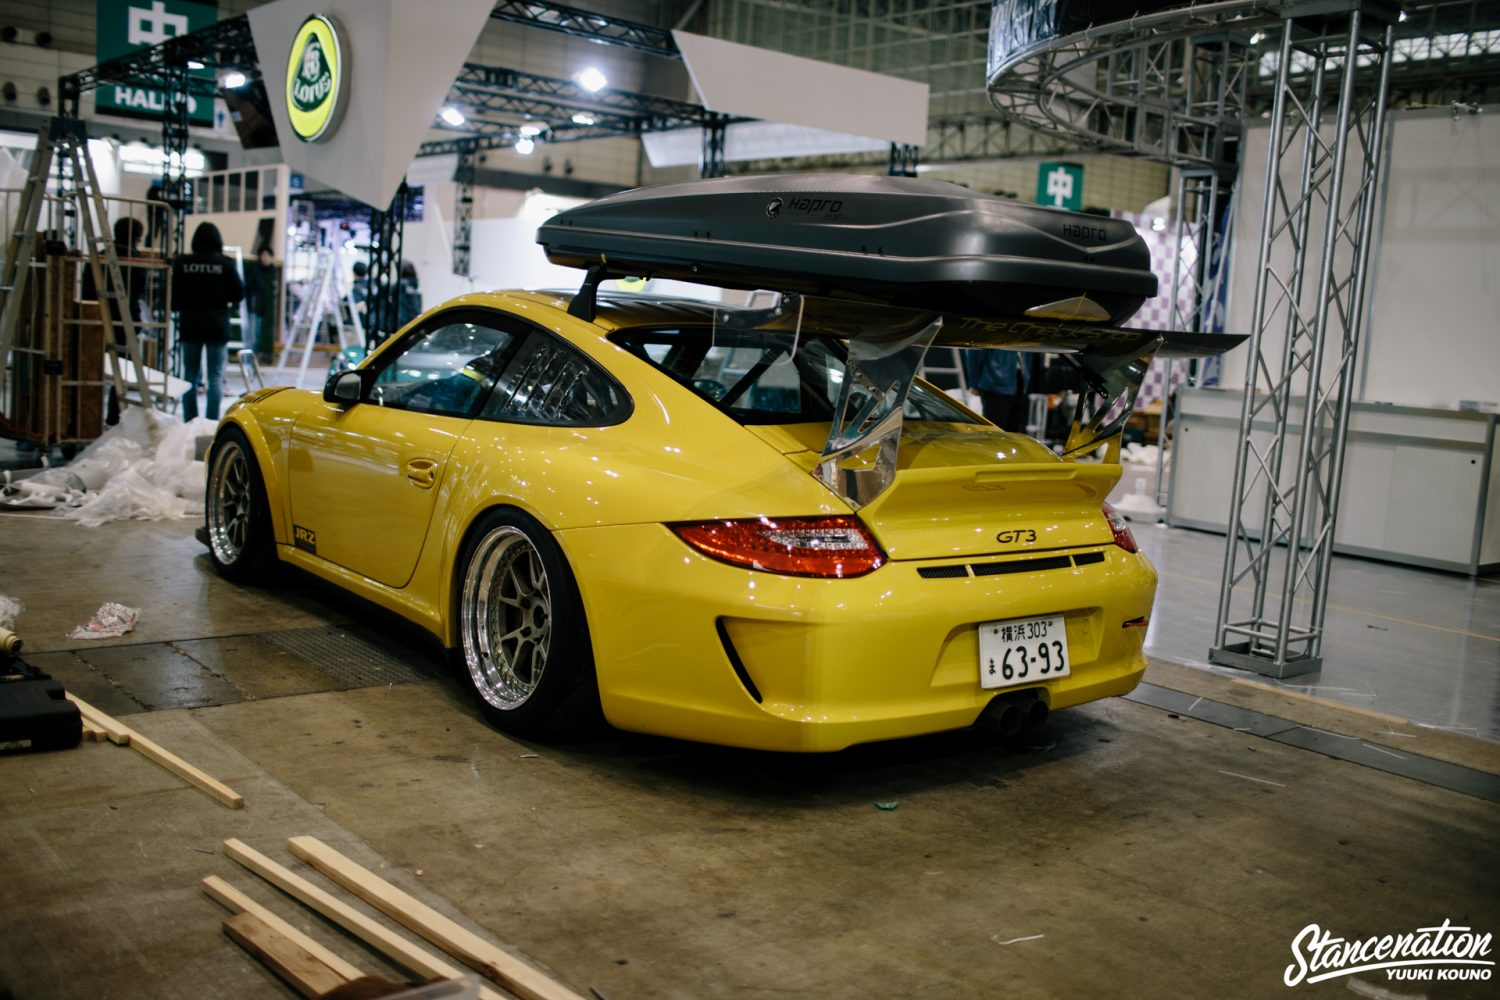 Tokyo Auto Salon 2017 Photo Coverage // Part 1 ...